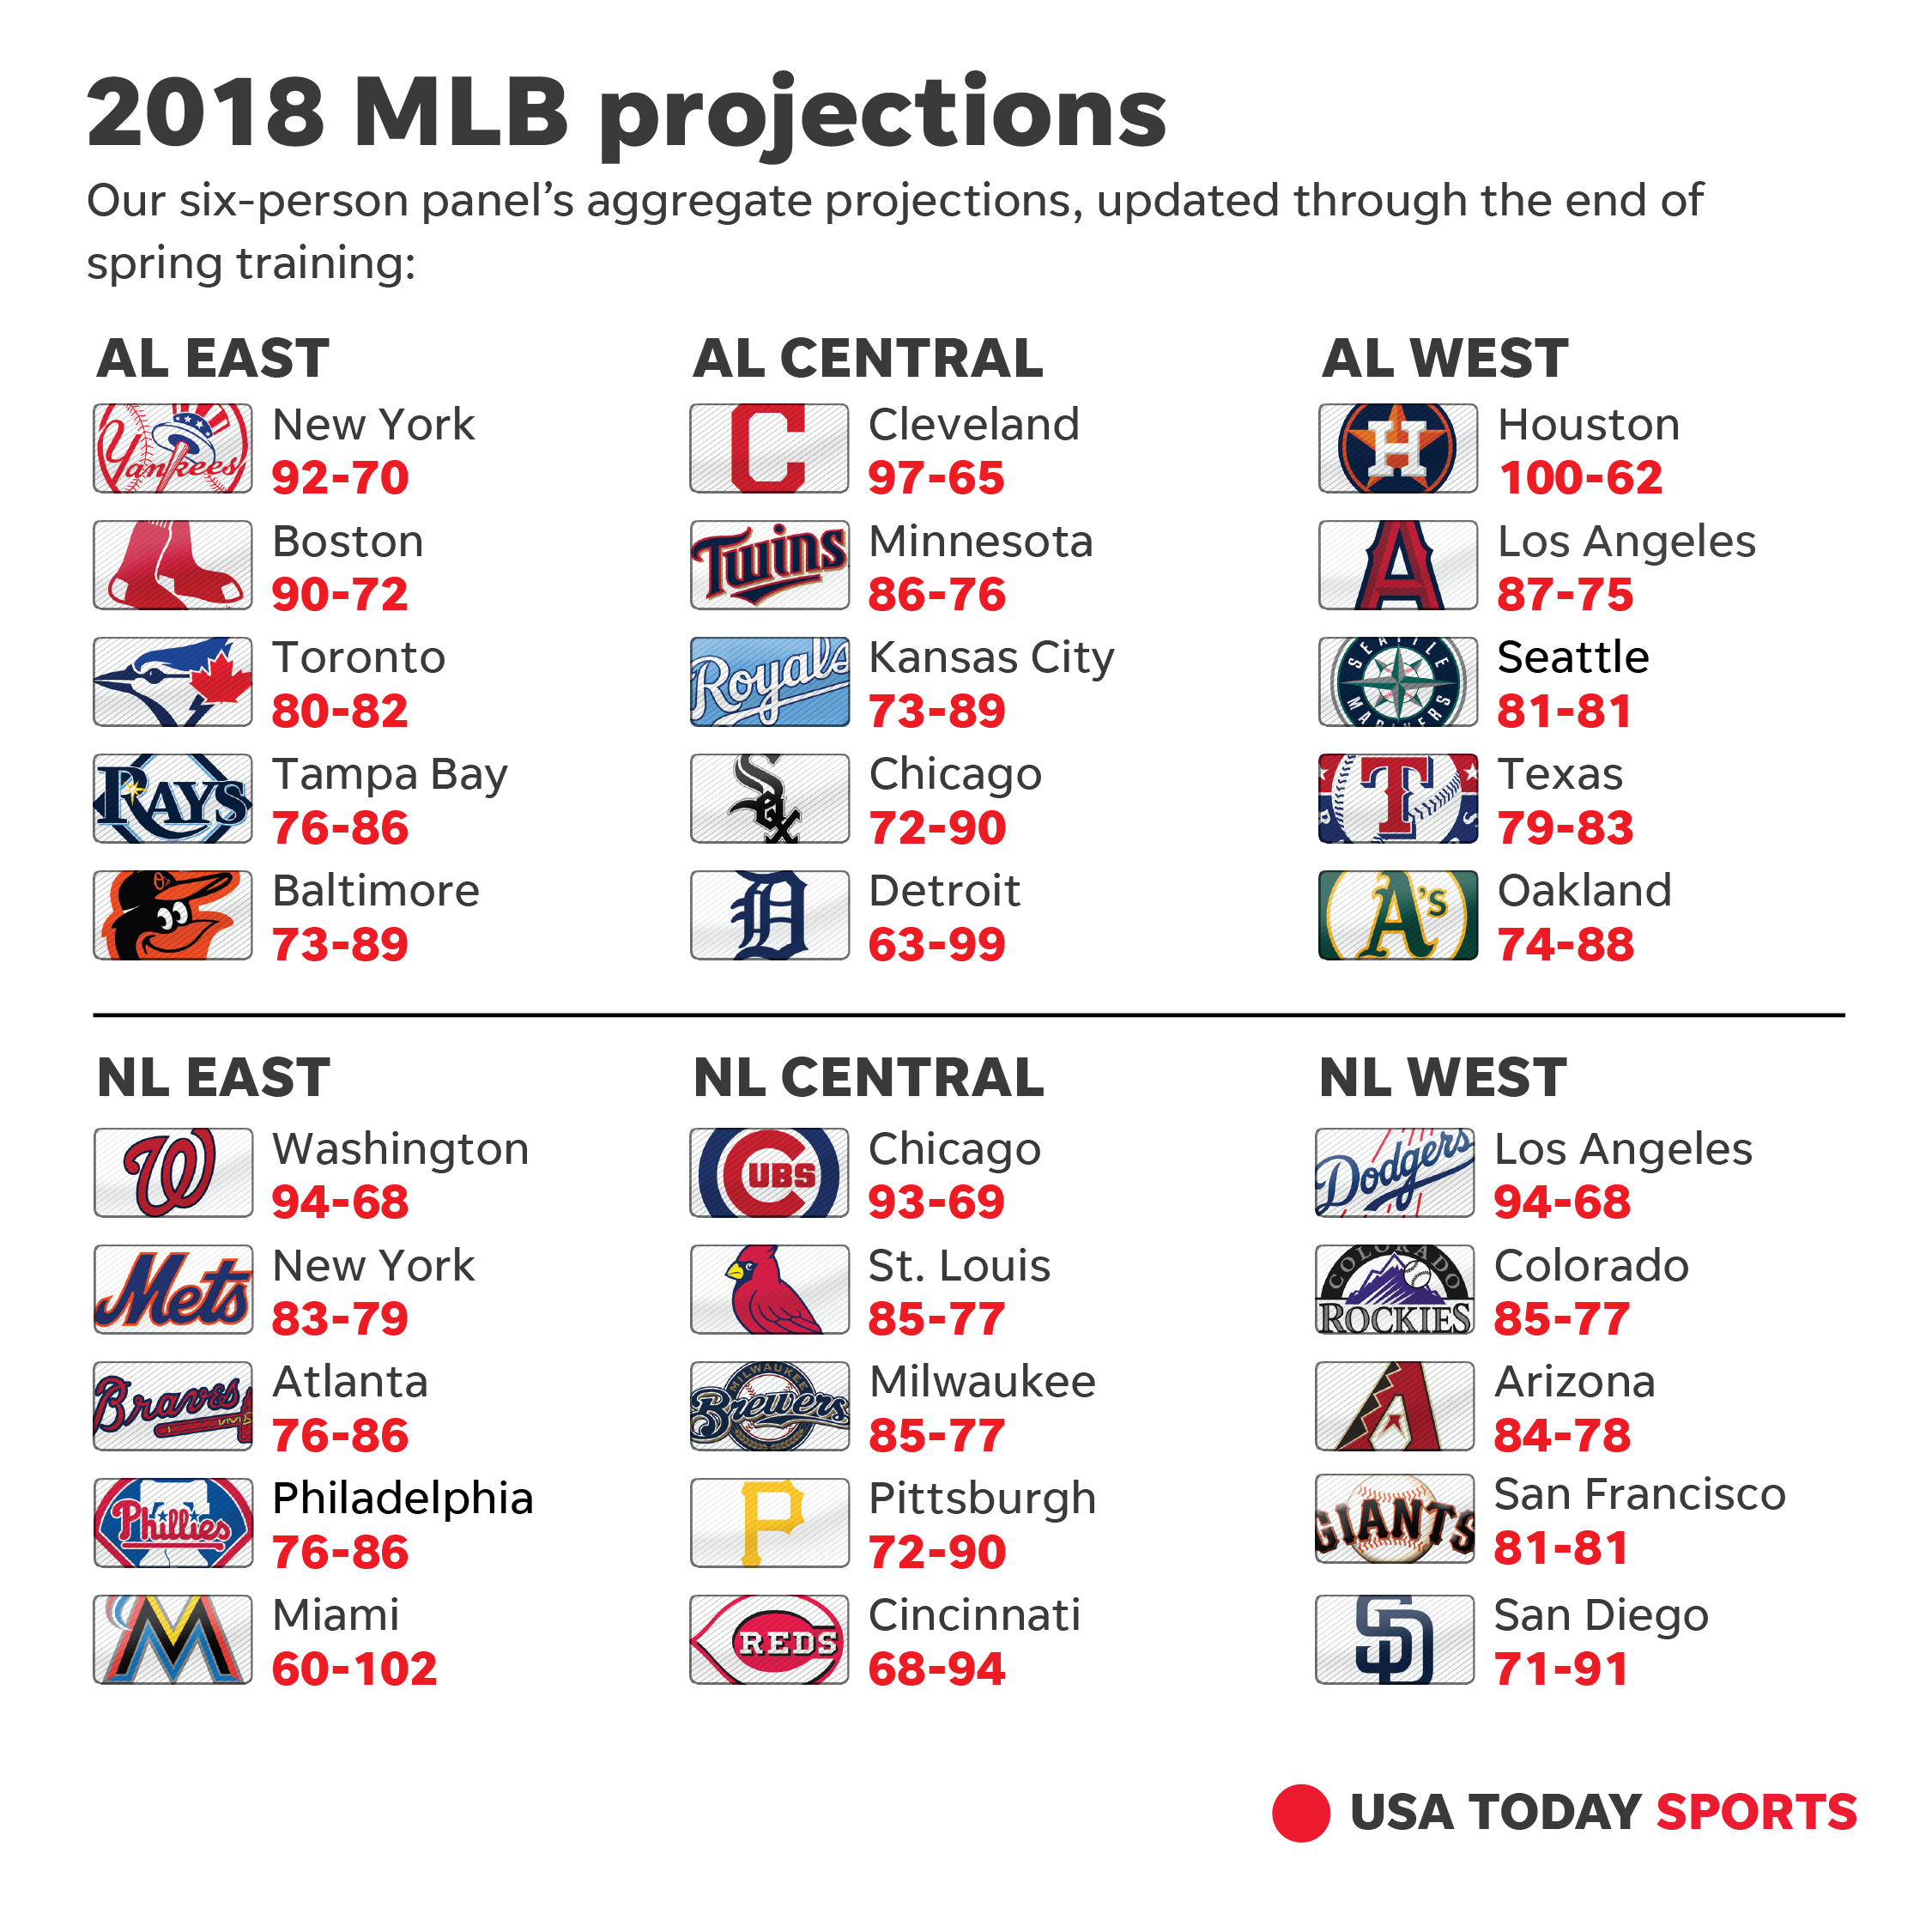 636575966572545642-032518-mlb-record-projections